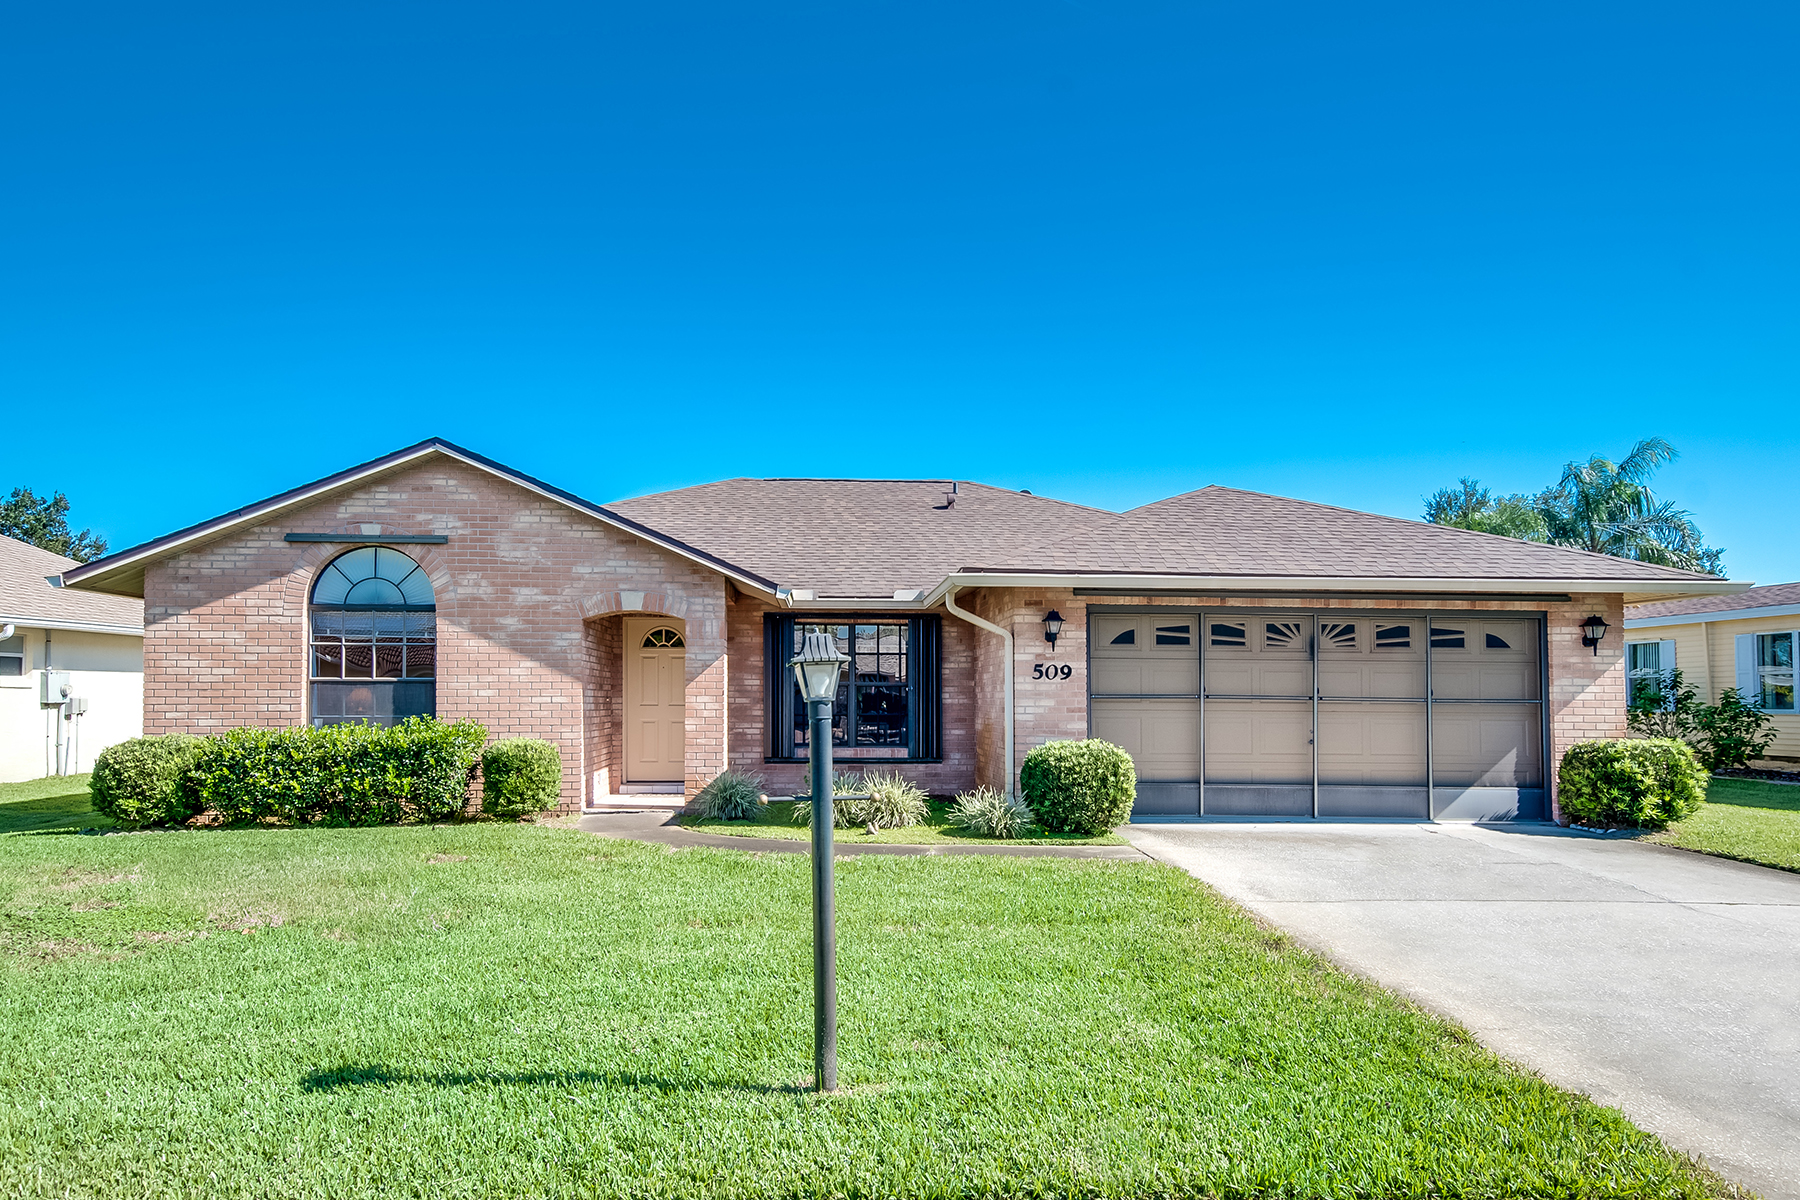 Single Family Homes for Sale at NEW SMYRNA BEACH 509 Old Minorcan Trl New Smyrna Beach, Florida 32168 United States